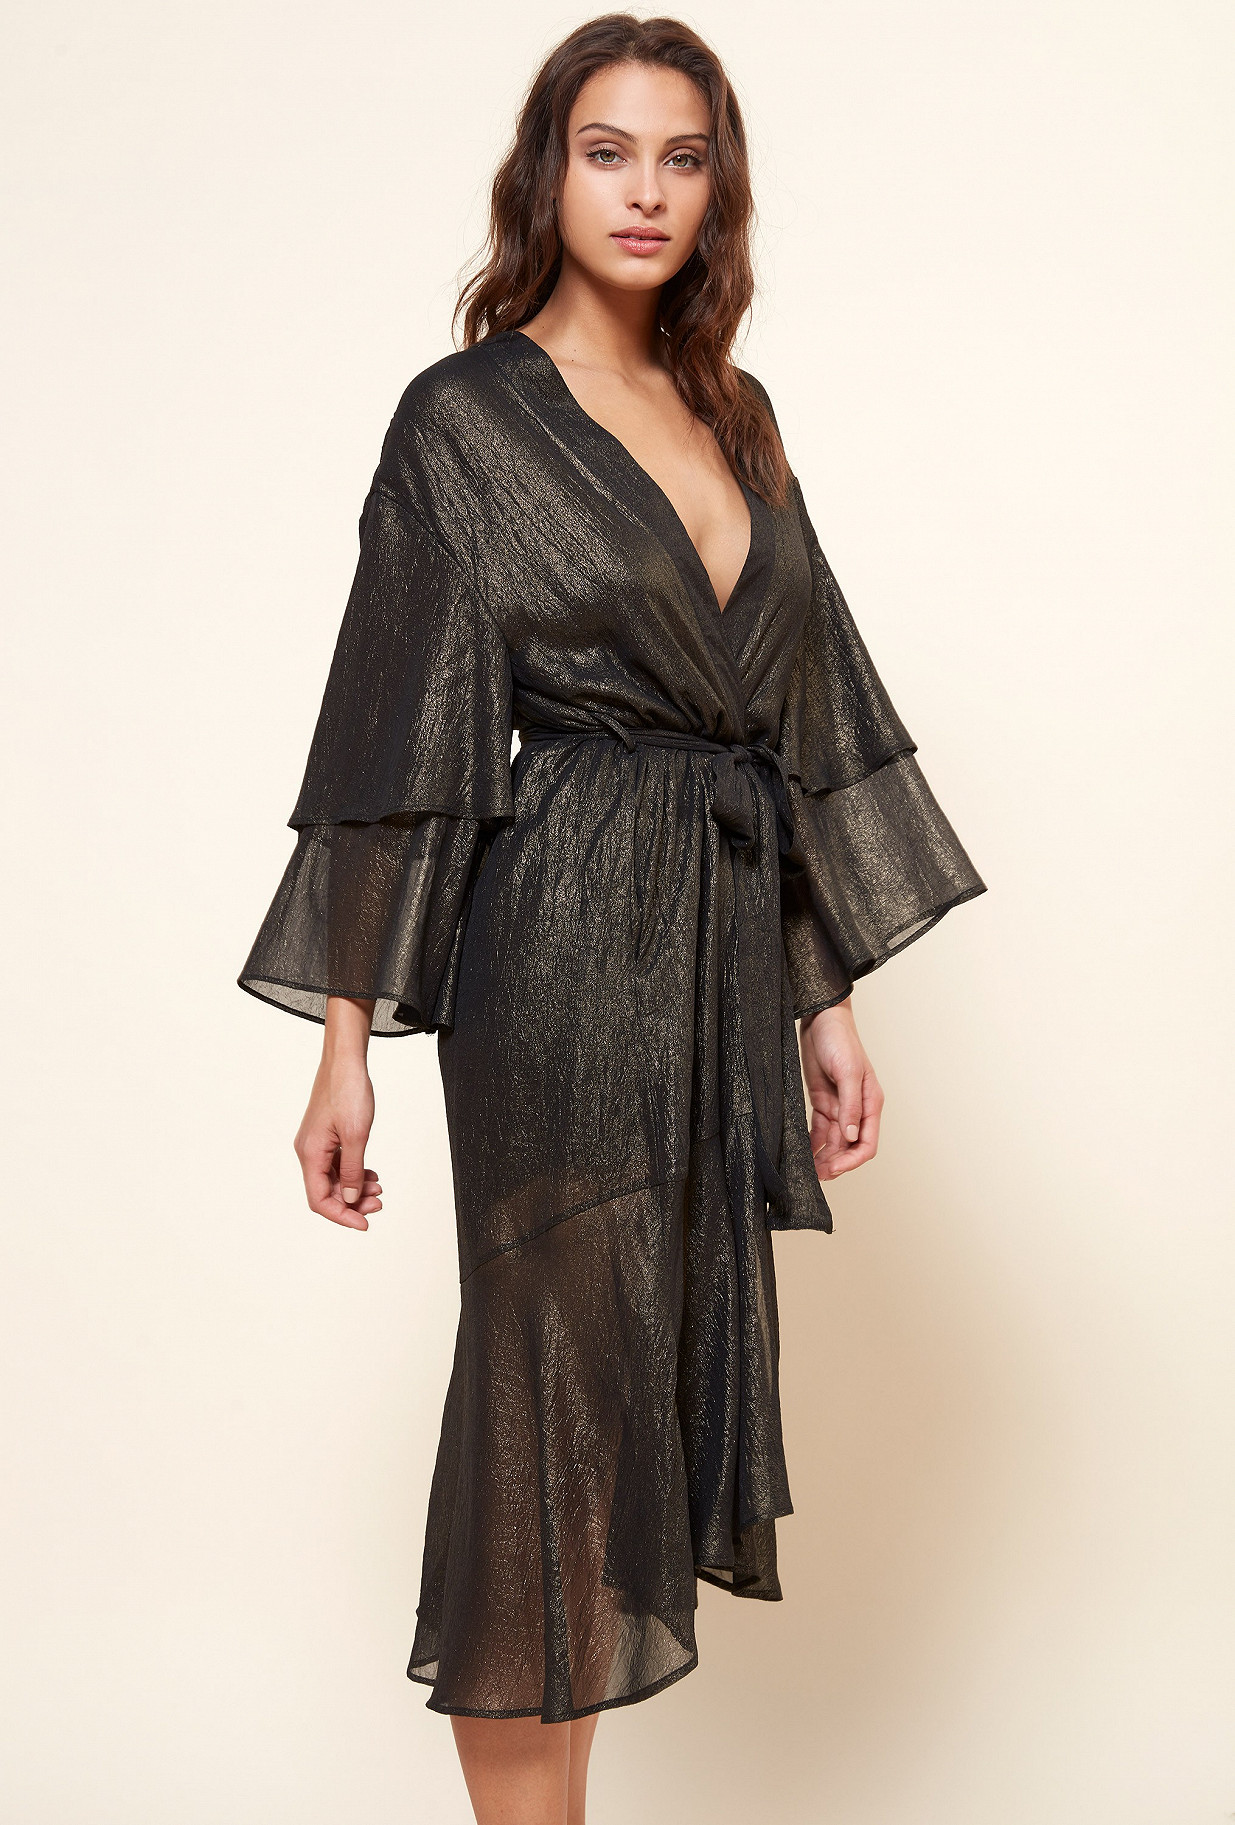 Paris clothes store KIMONO  Reflexion french designer fashion Paris